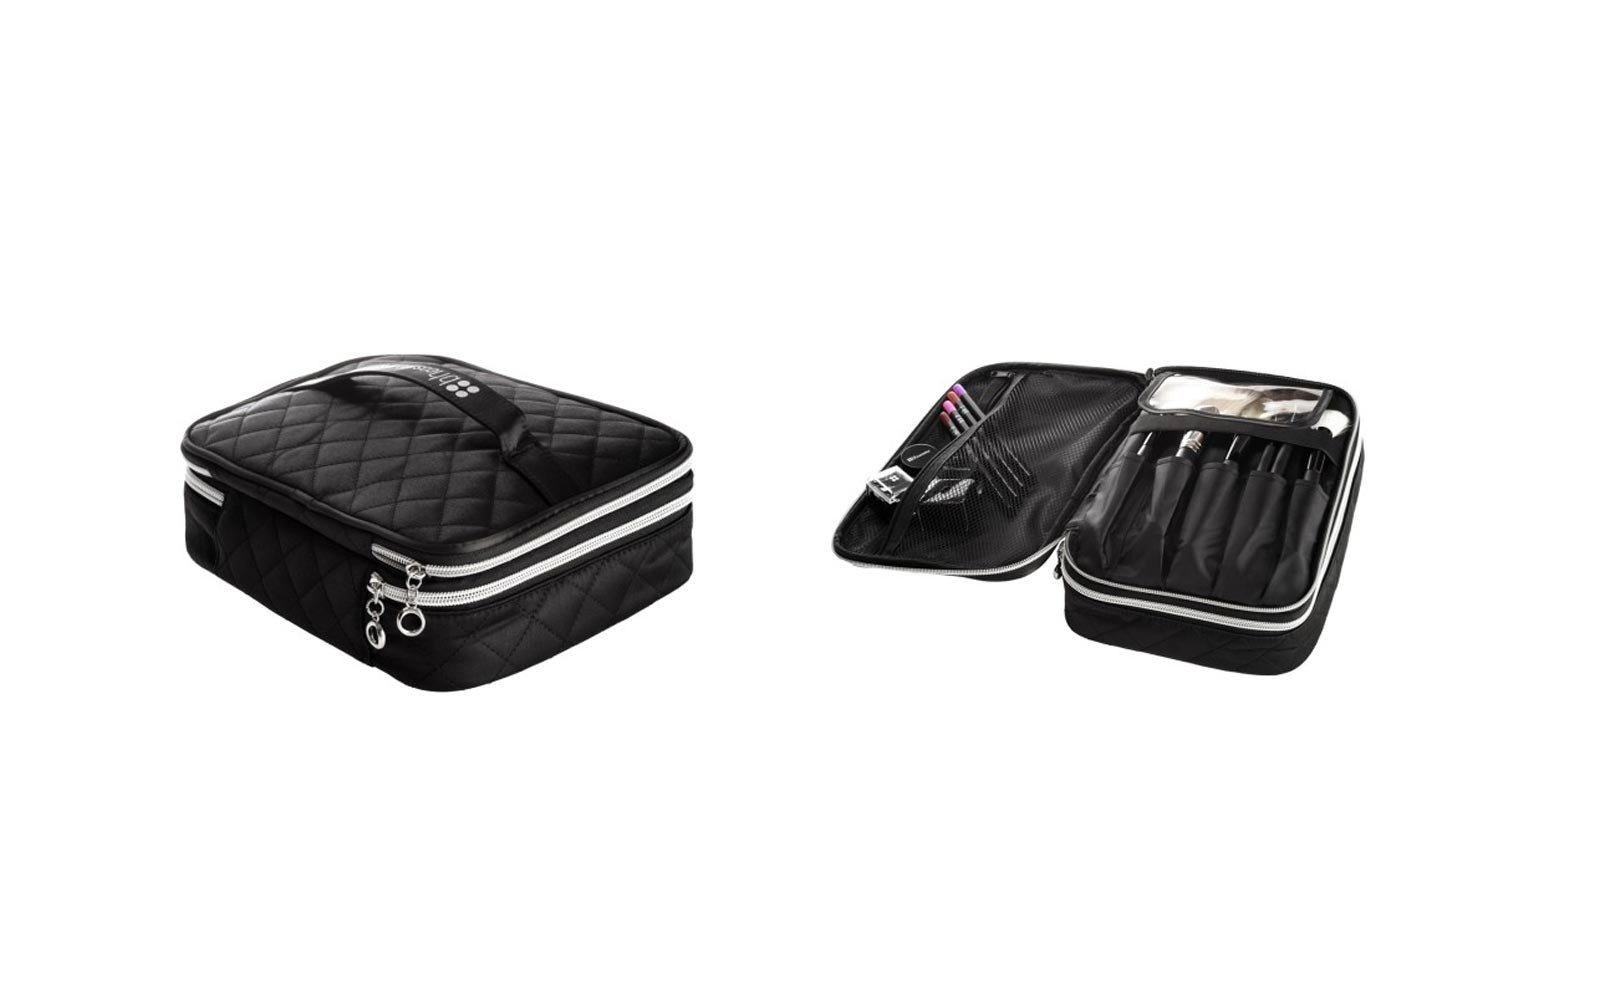 Makeup bag with compartments for brushes